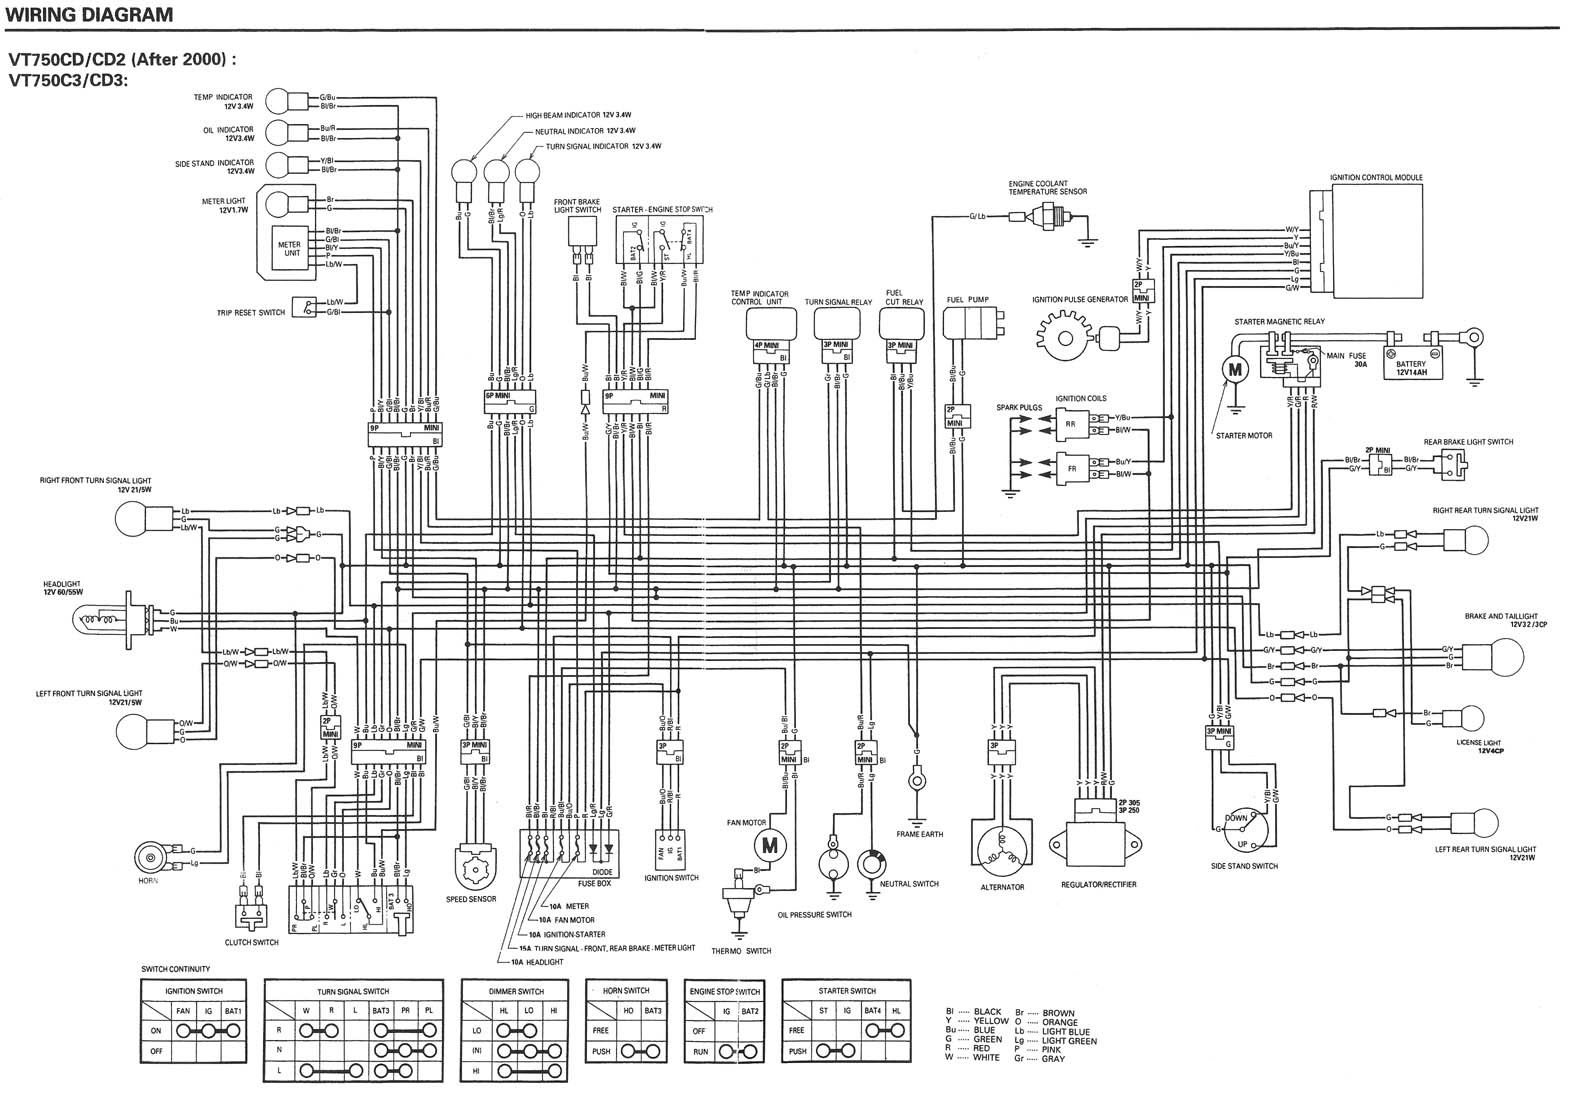 Big Dog Wiring -2002 Ford Taurus Se Wiring Diagram | Begeboy Wiring Diagram  Source | 2008 Big Dog Wiring Diagram |  | Begeboy Wiring Diagram Source